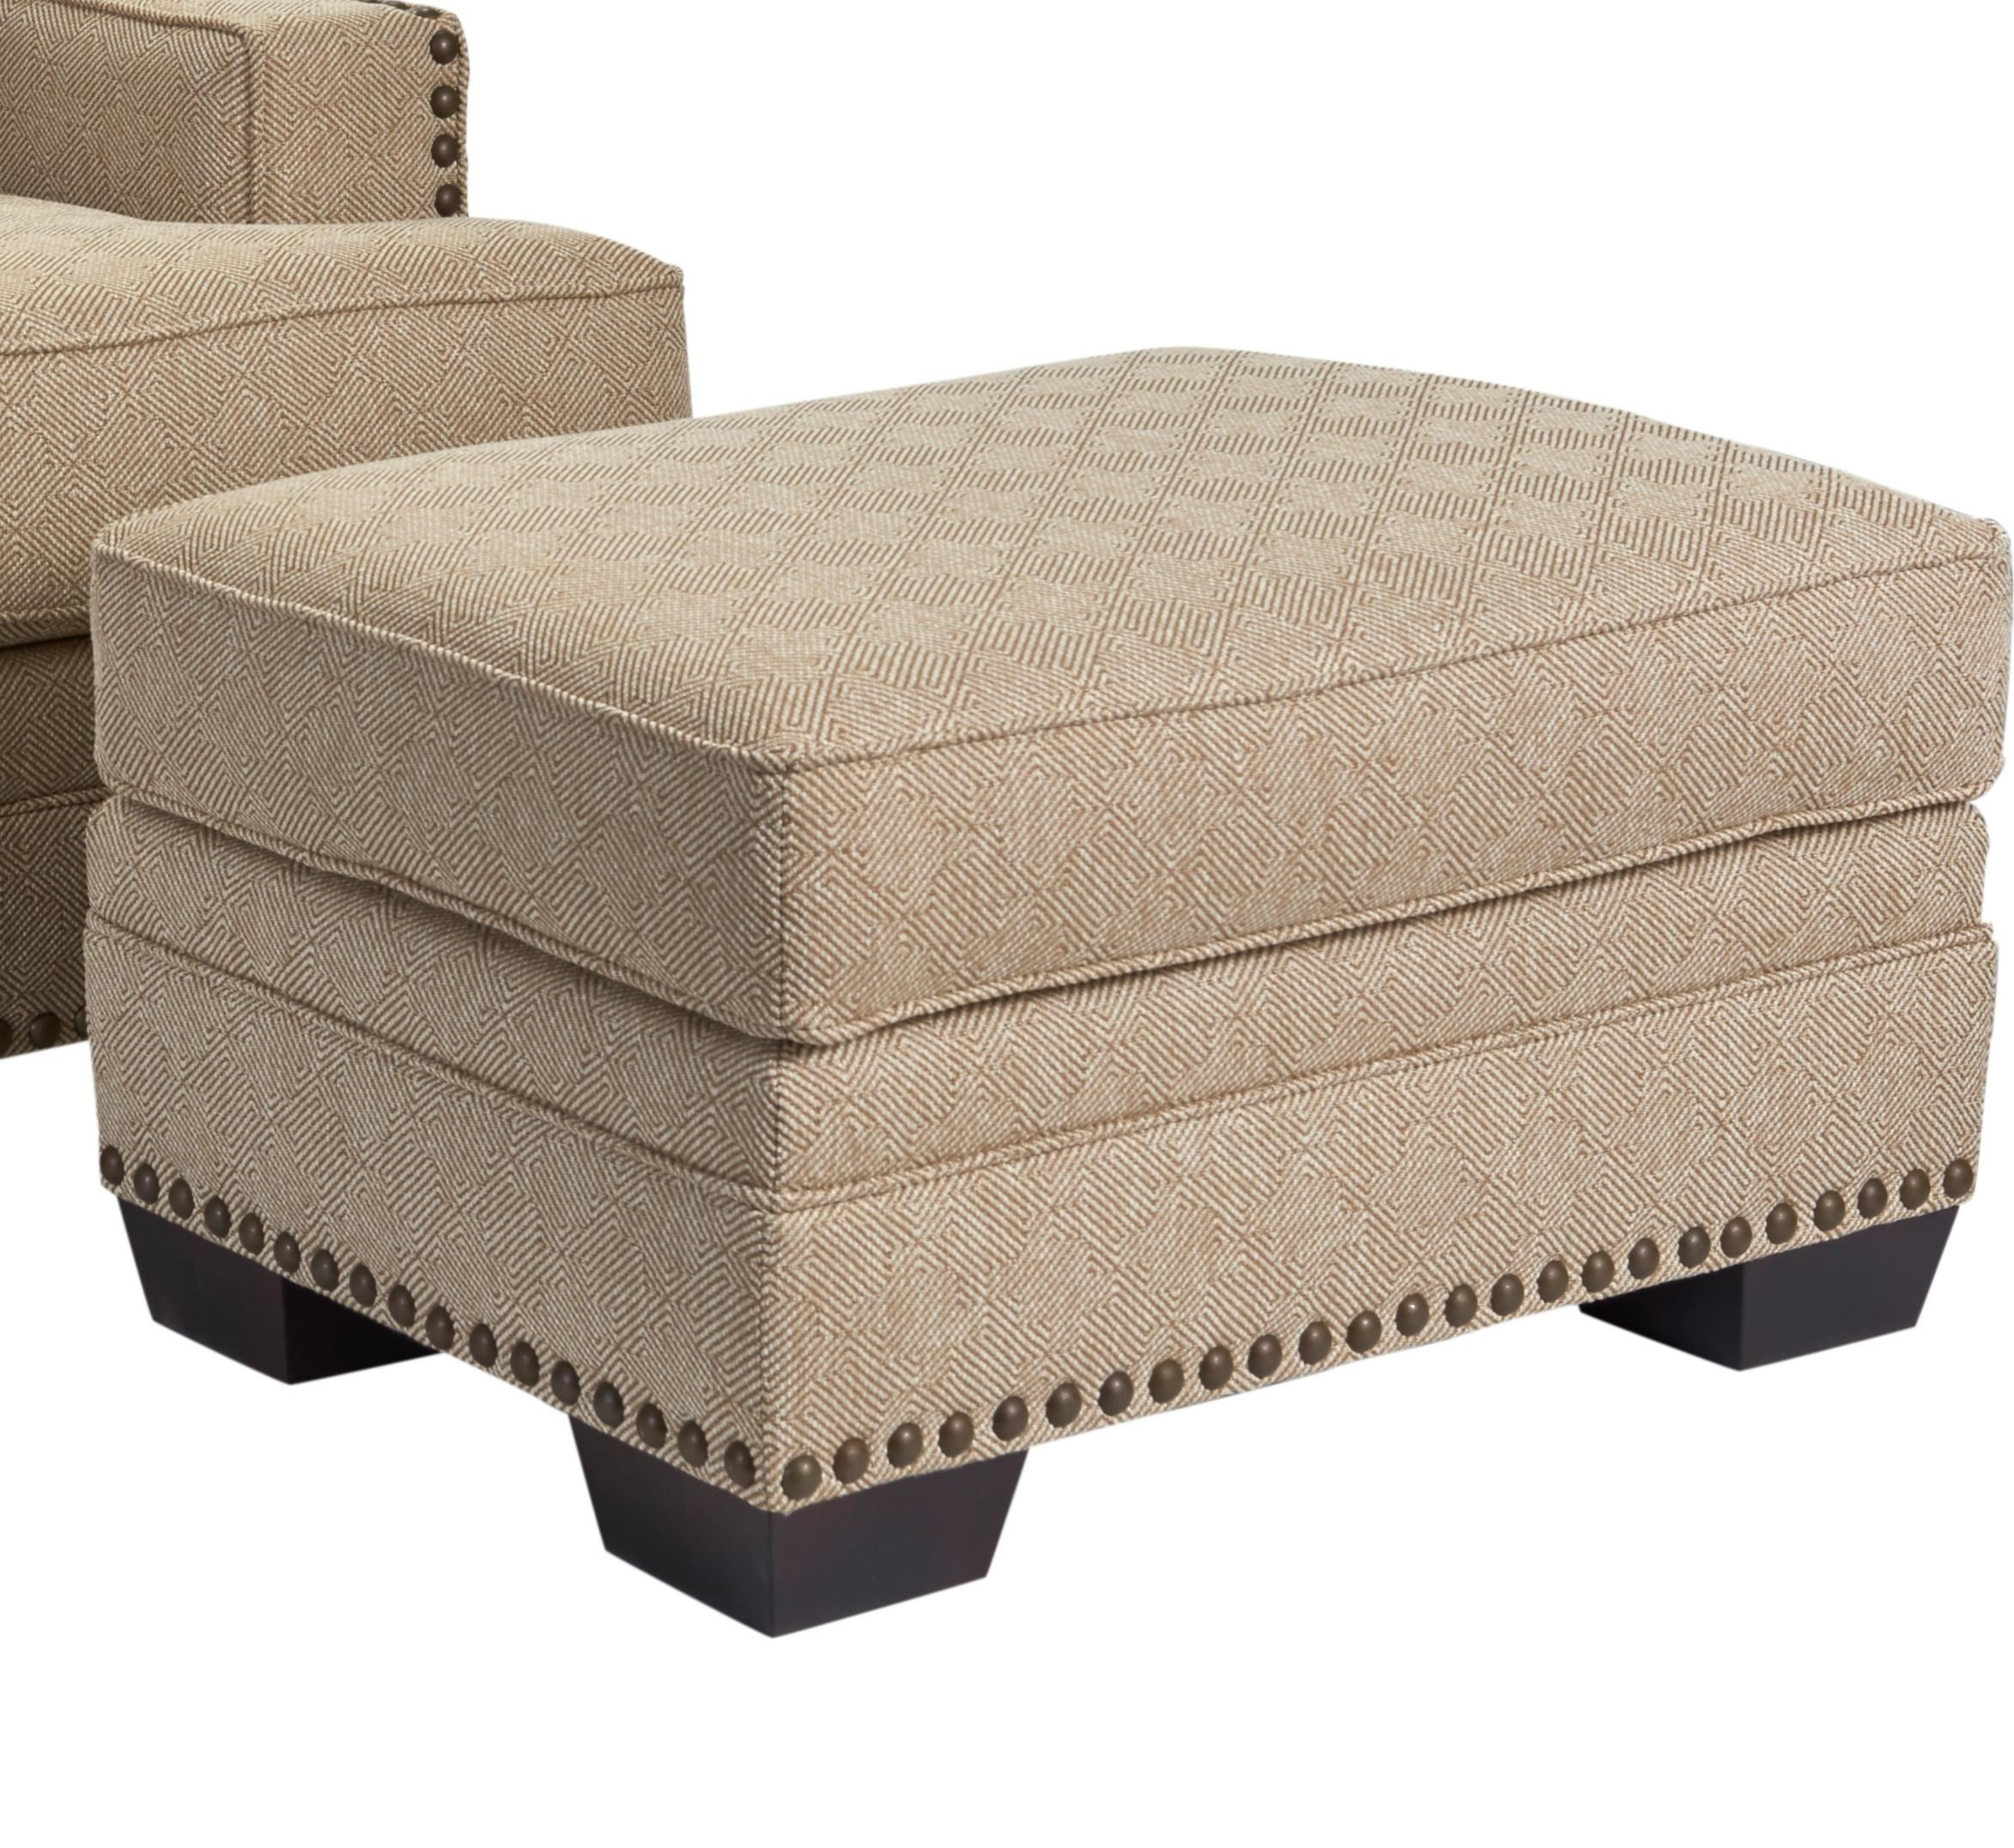 Broyhill Furniture Estes Park Contemporary Chair Ottoman